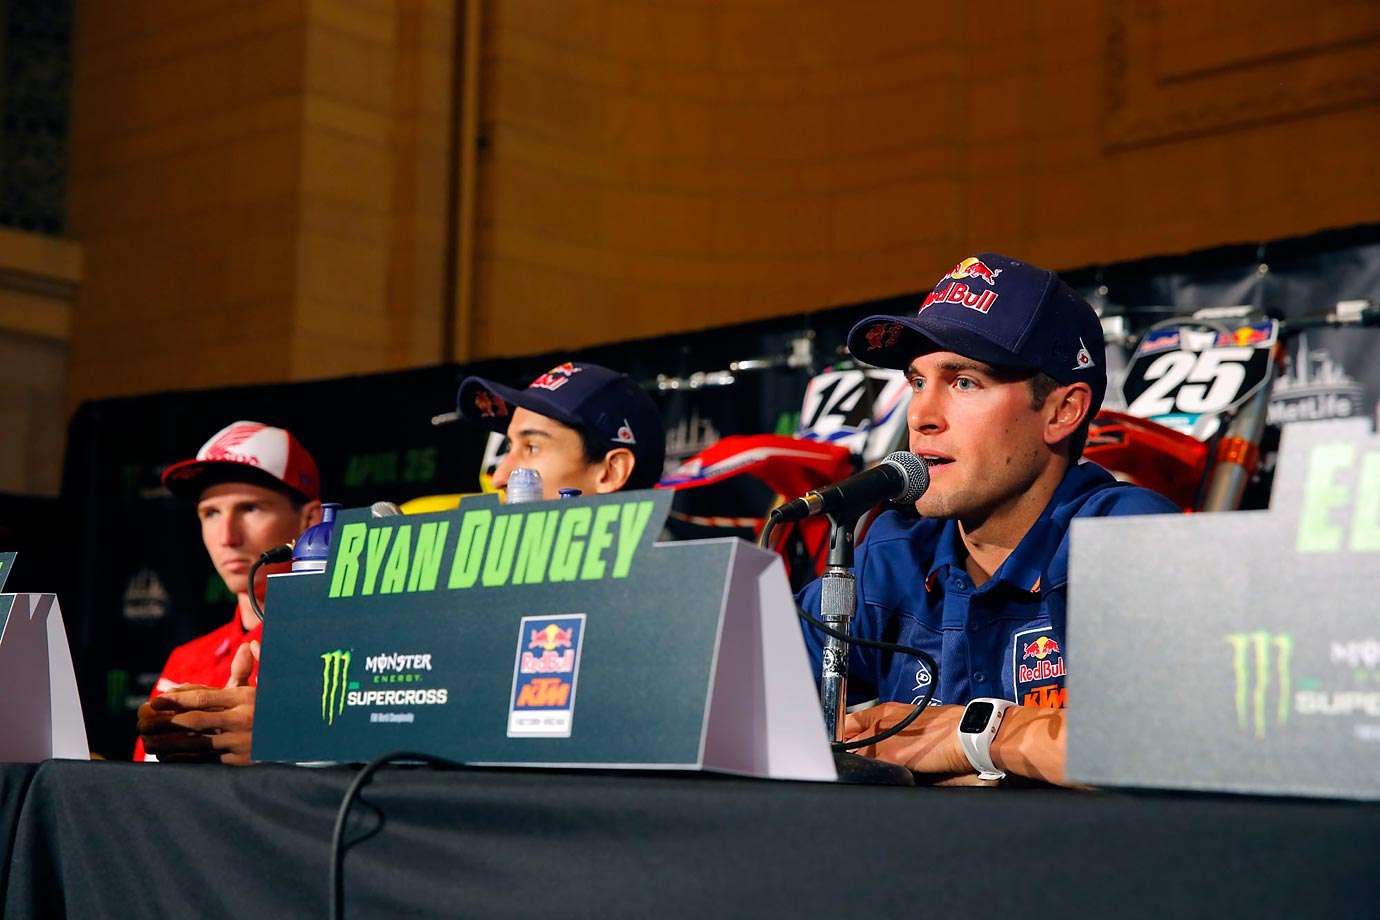 RDungey takes questions at a press conference before Saturday's event.